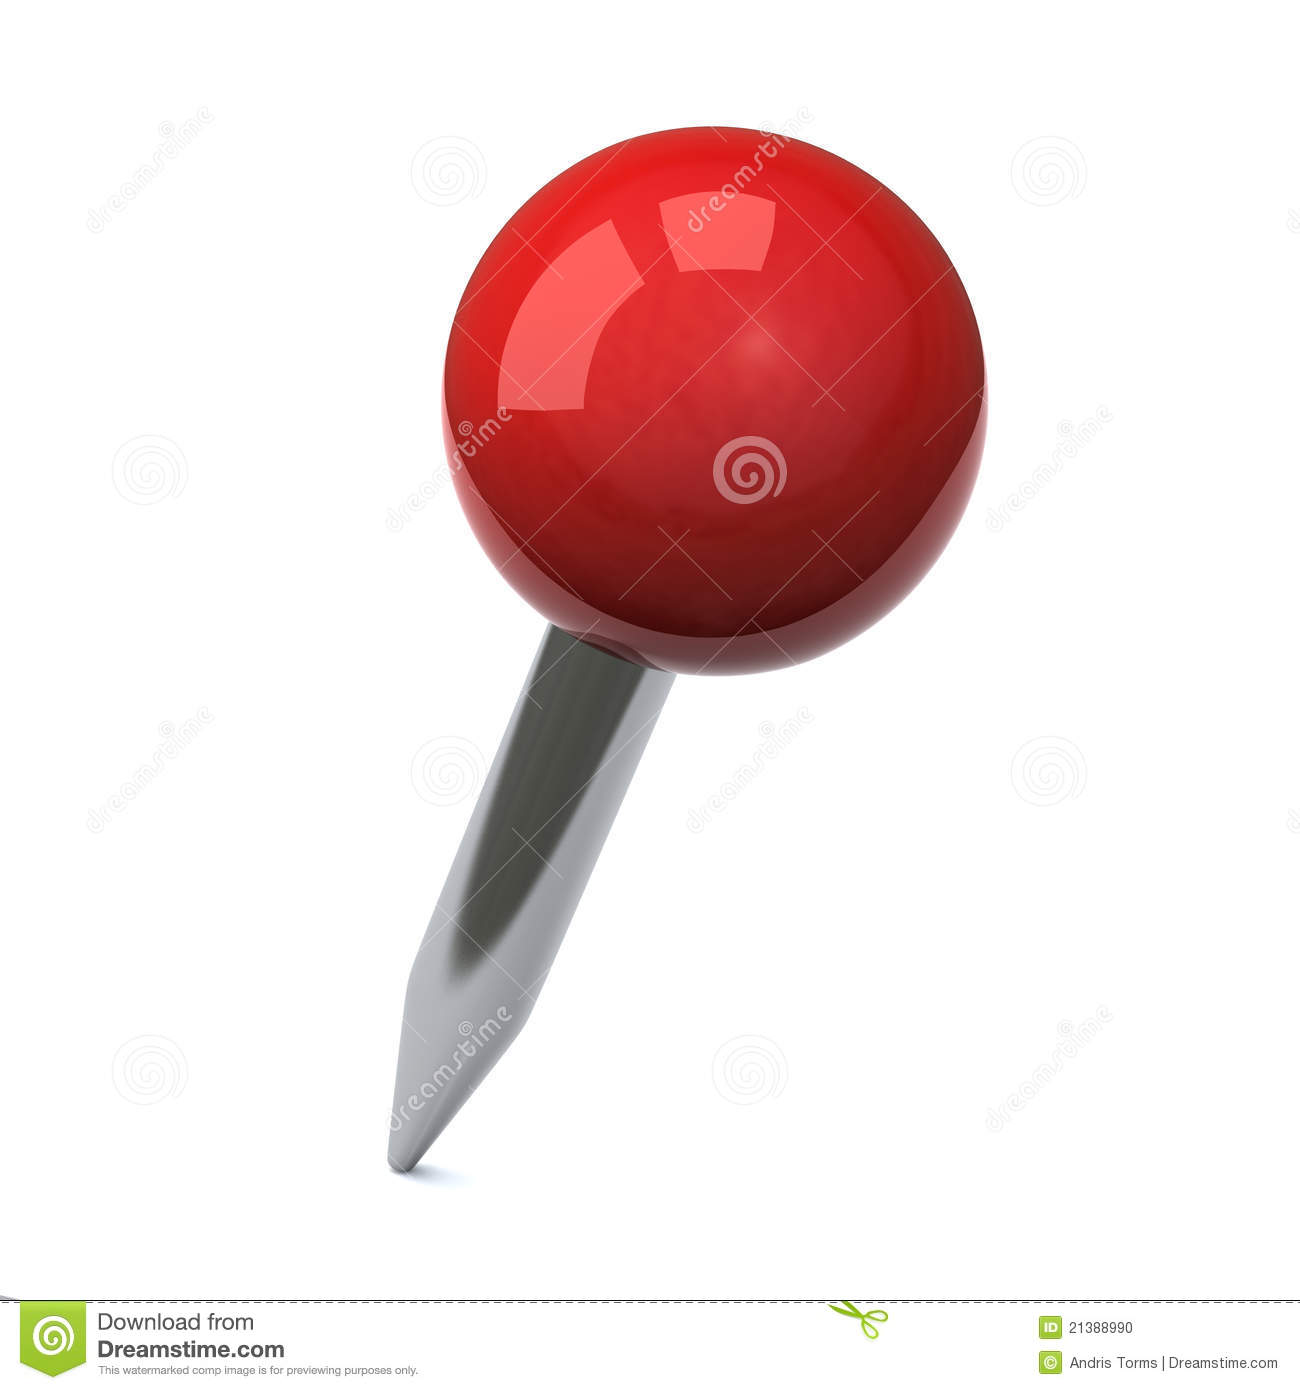 thumbtack map with Stock Photo Red Push Pin 3d Image21388990 on Logo Design together with Chartreuse left mapmarker pushpin icon furthermore All besides Push Pin   4376 in addition Photo Libre De Droits Punaise Rouge Image16462535.